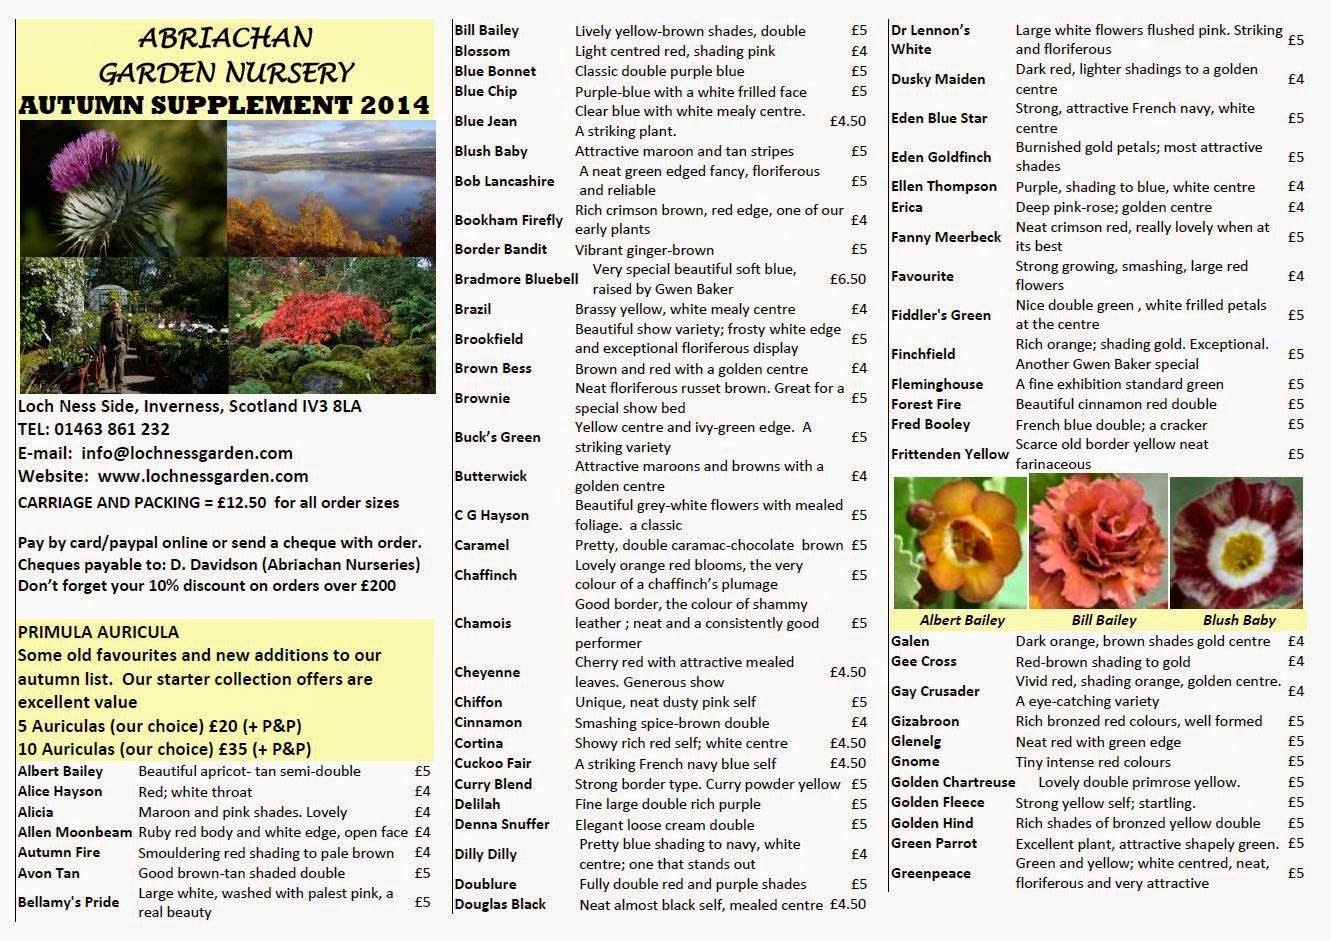 http://www.lochnessgarden.com/catalogue/htmcatalogue/Autumn%20Supp%202014.htm